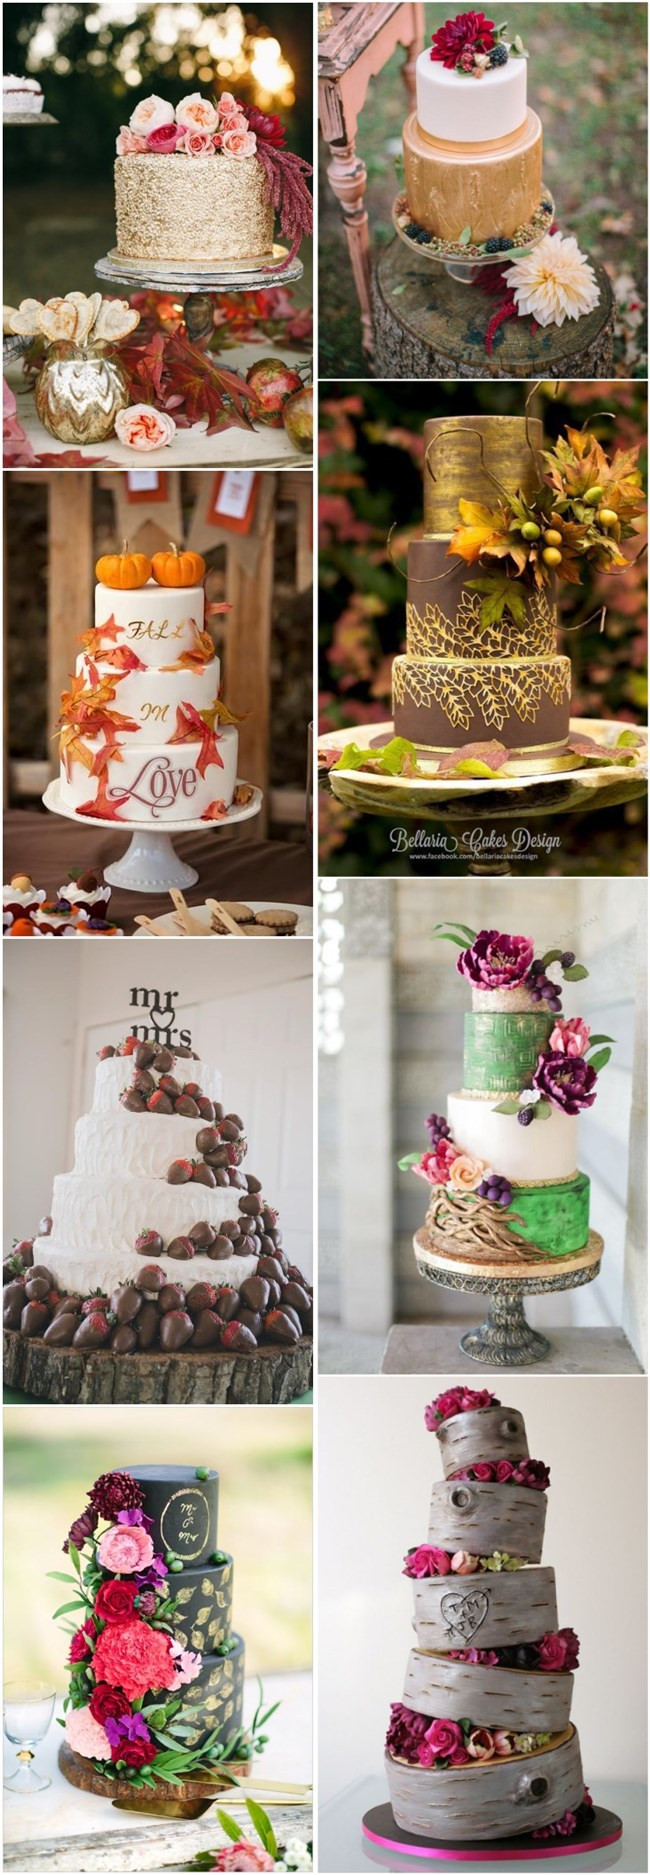 Simple Fall Wedding Cakes  45 Incredible Fall Wedding Cakes that WOW